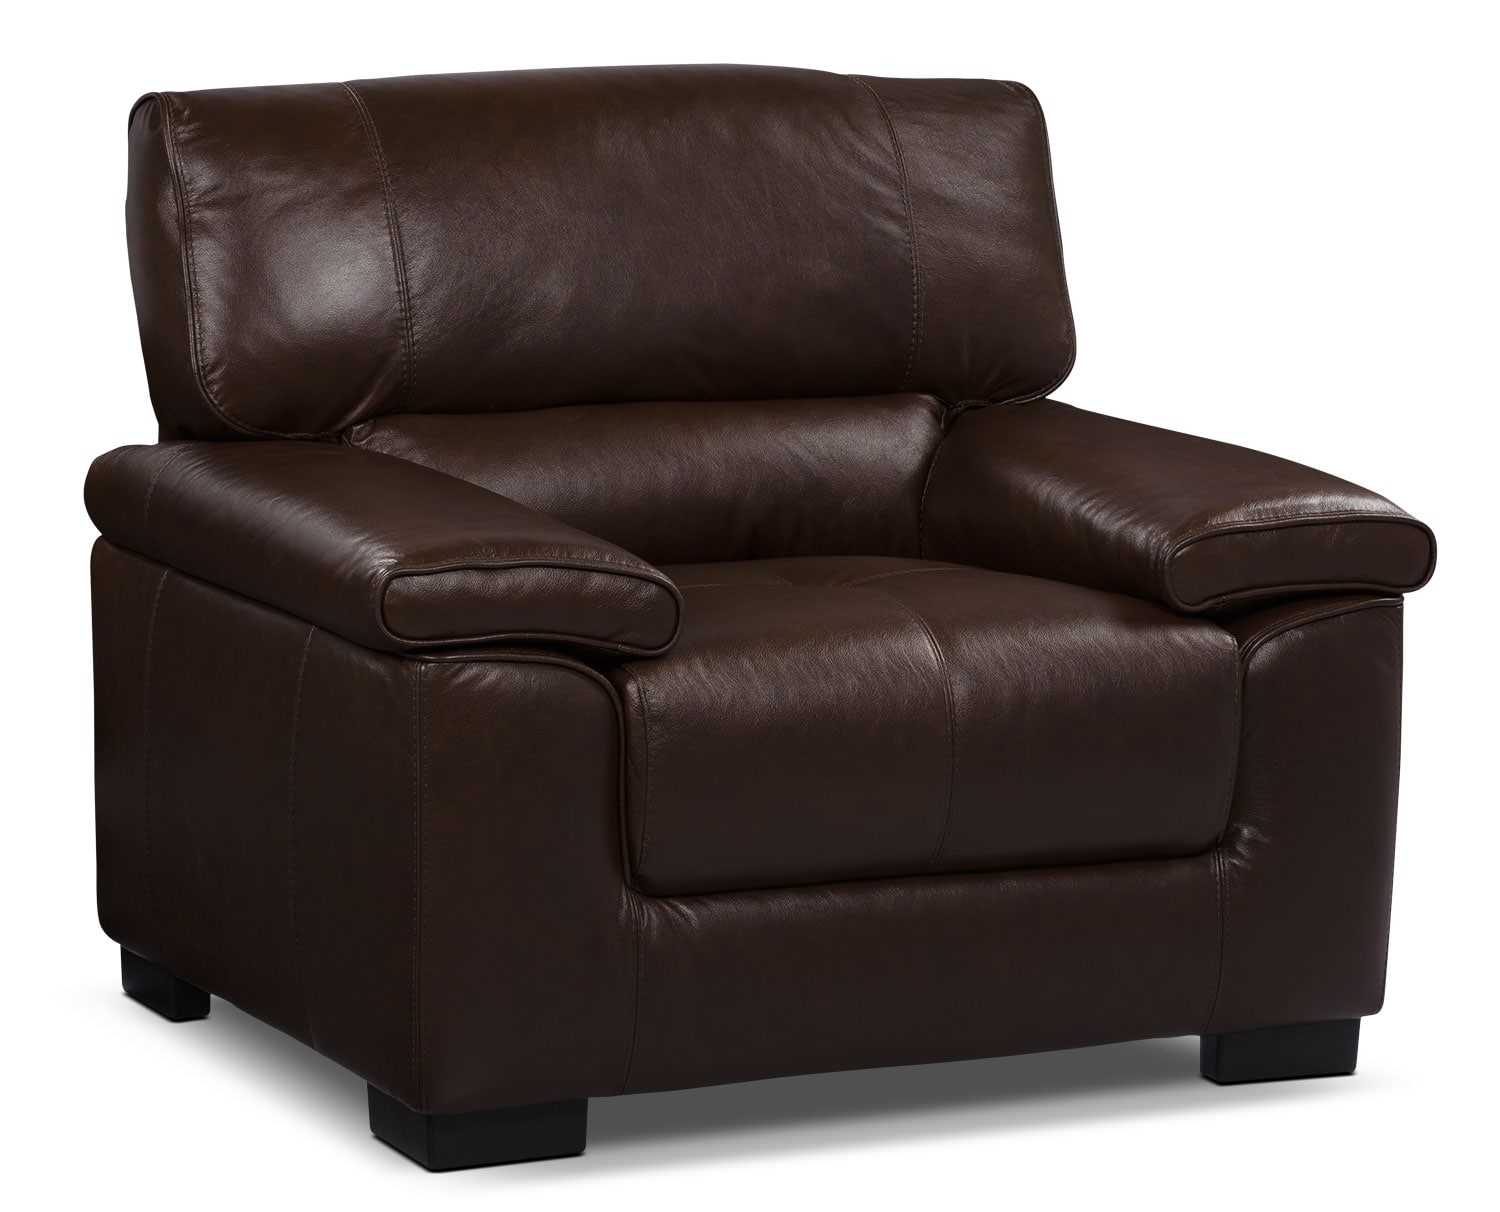 Chateau D Ax 100 Genuine Leather Sofa Dark Brown The